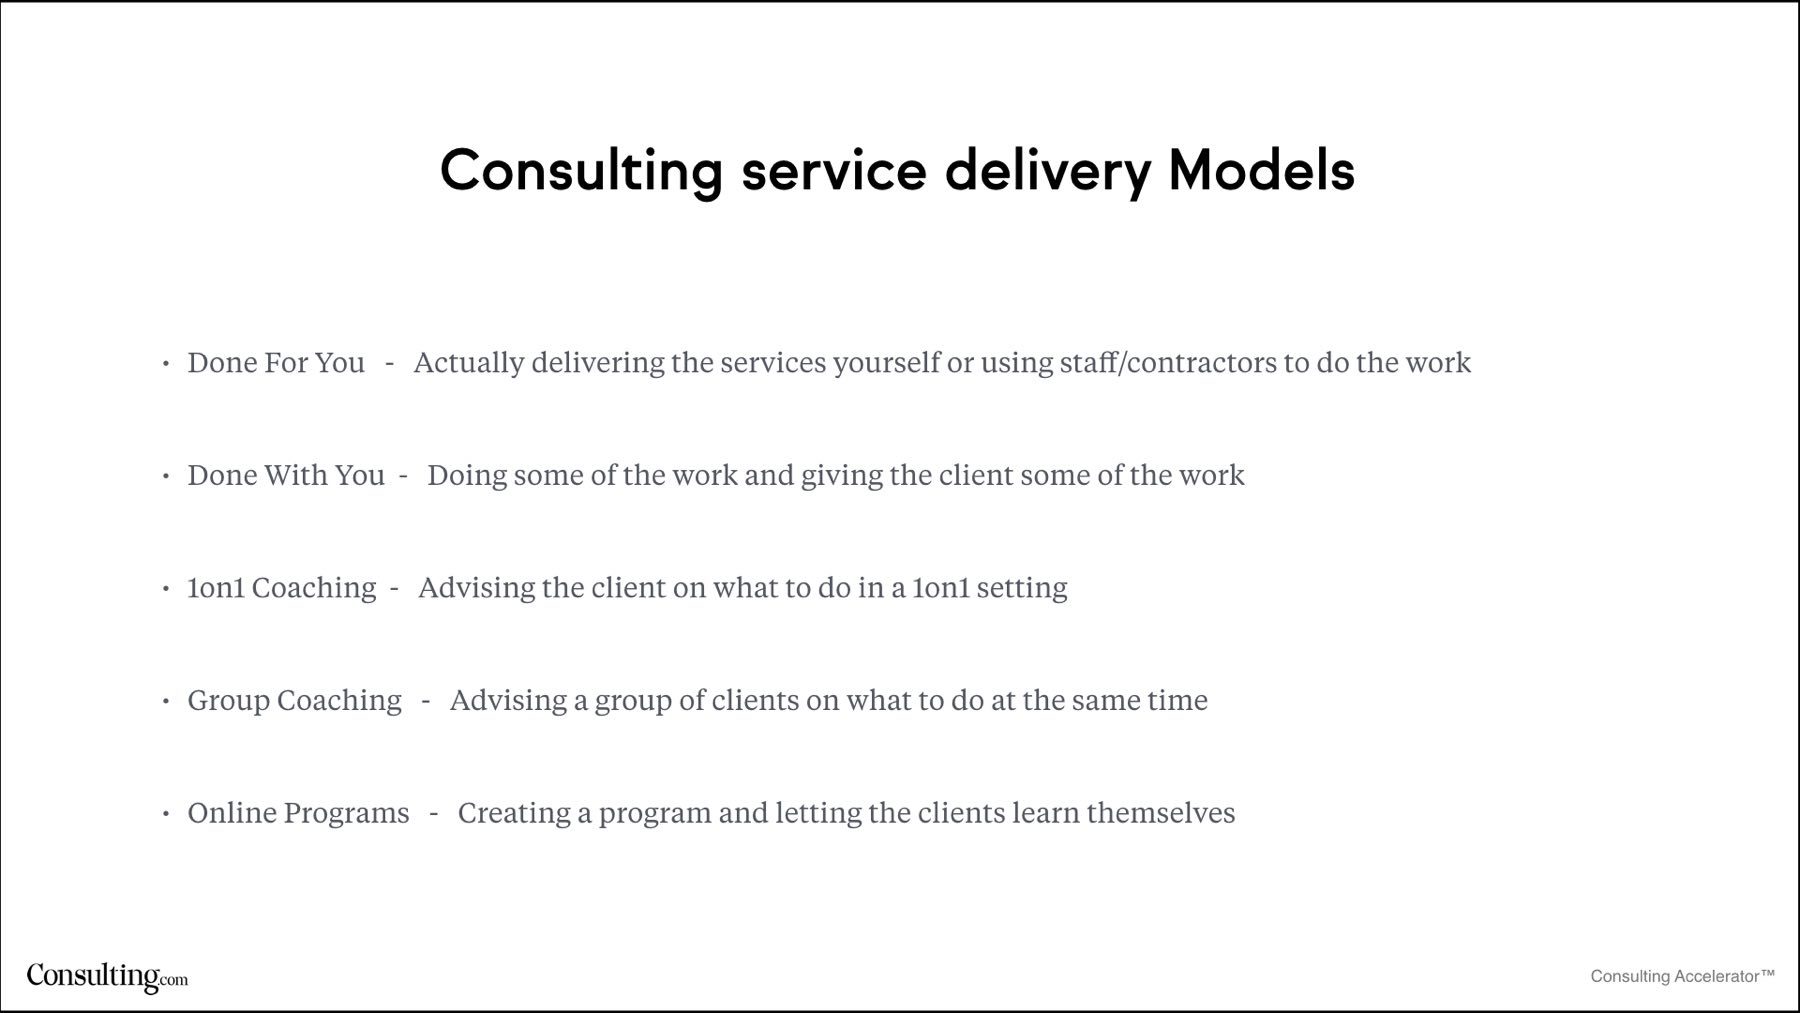 Consulting service delivery models